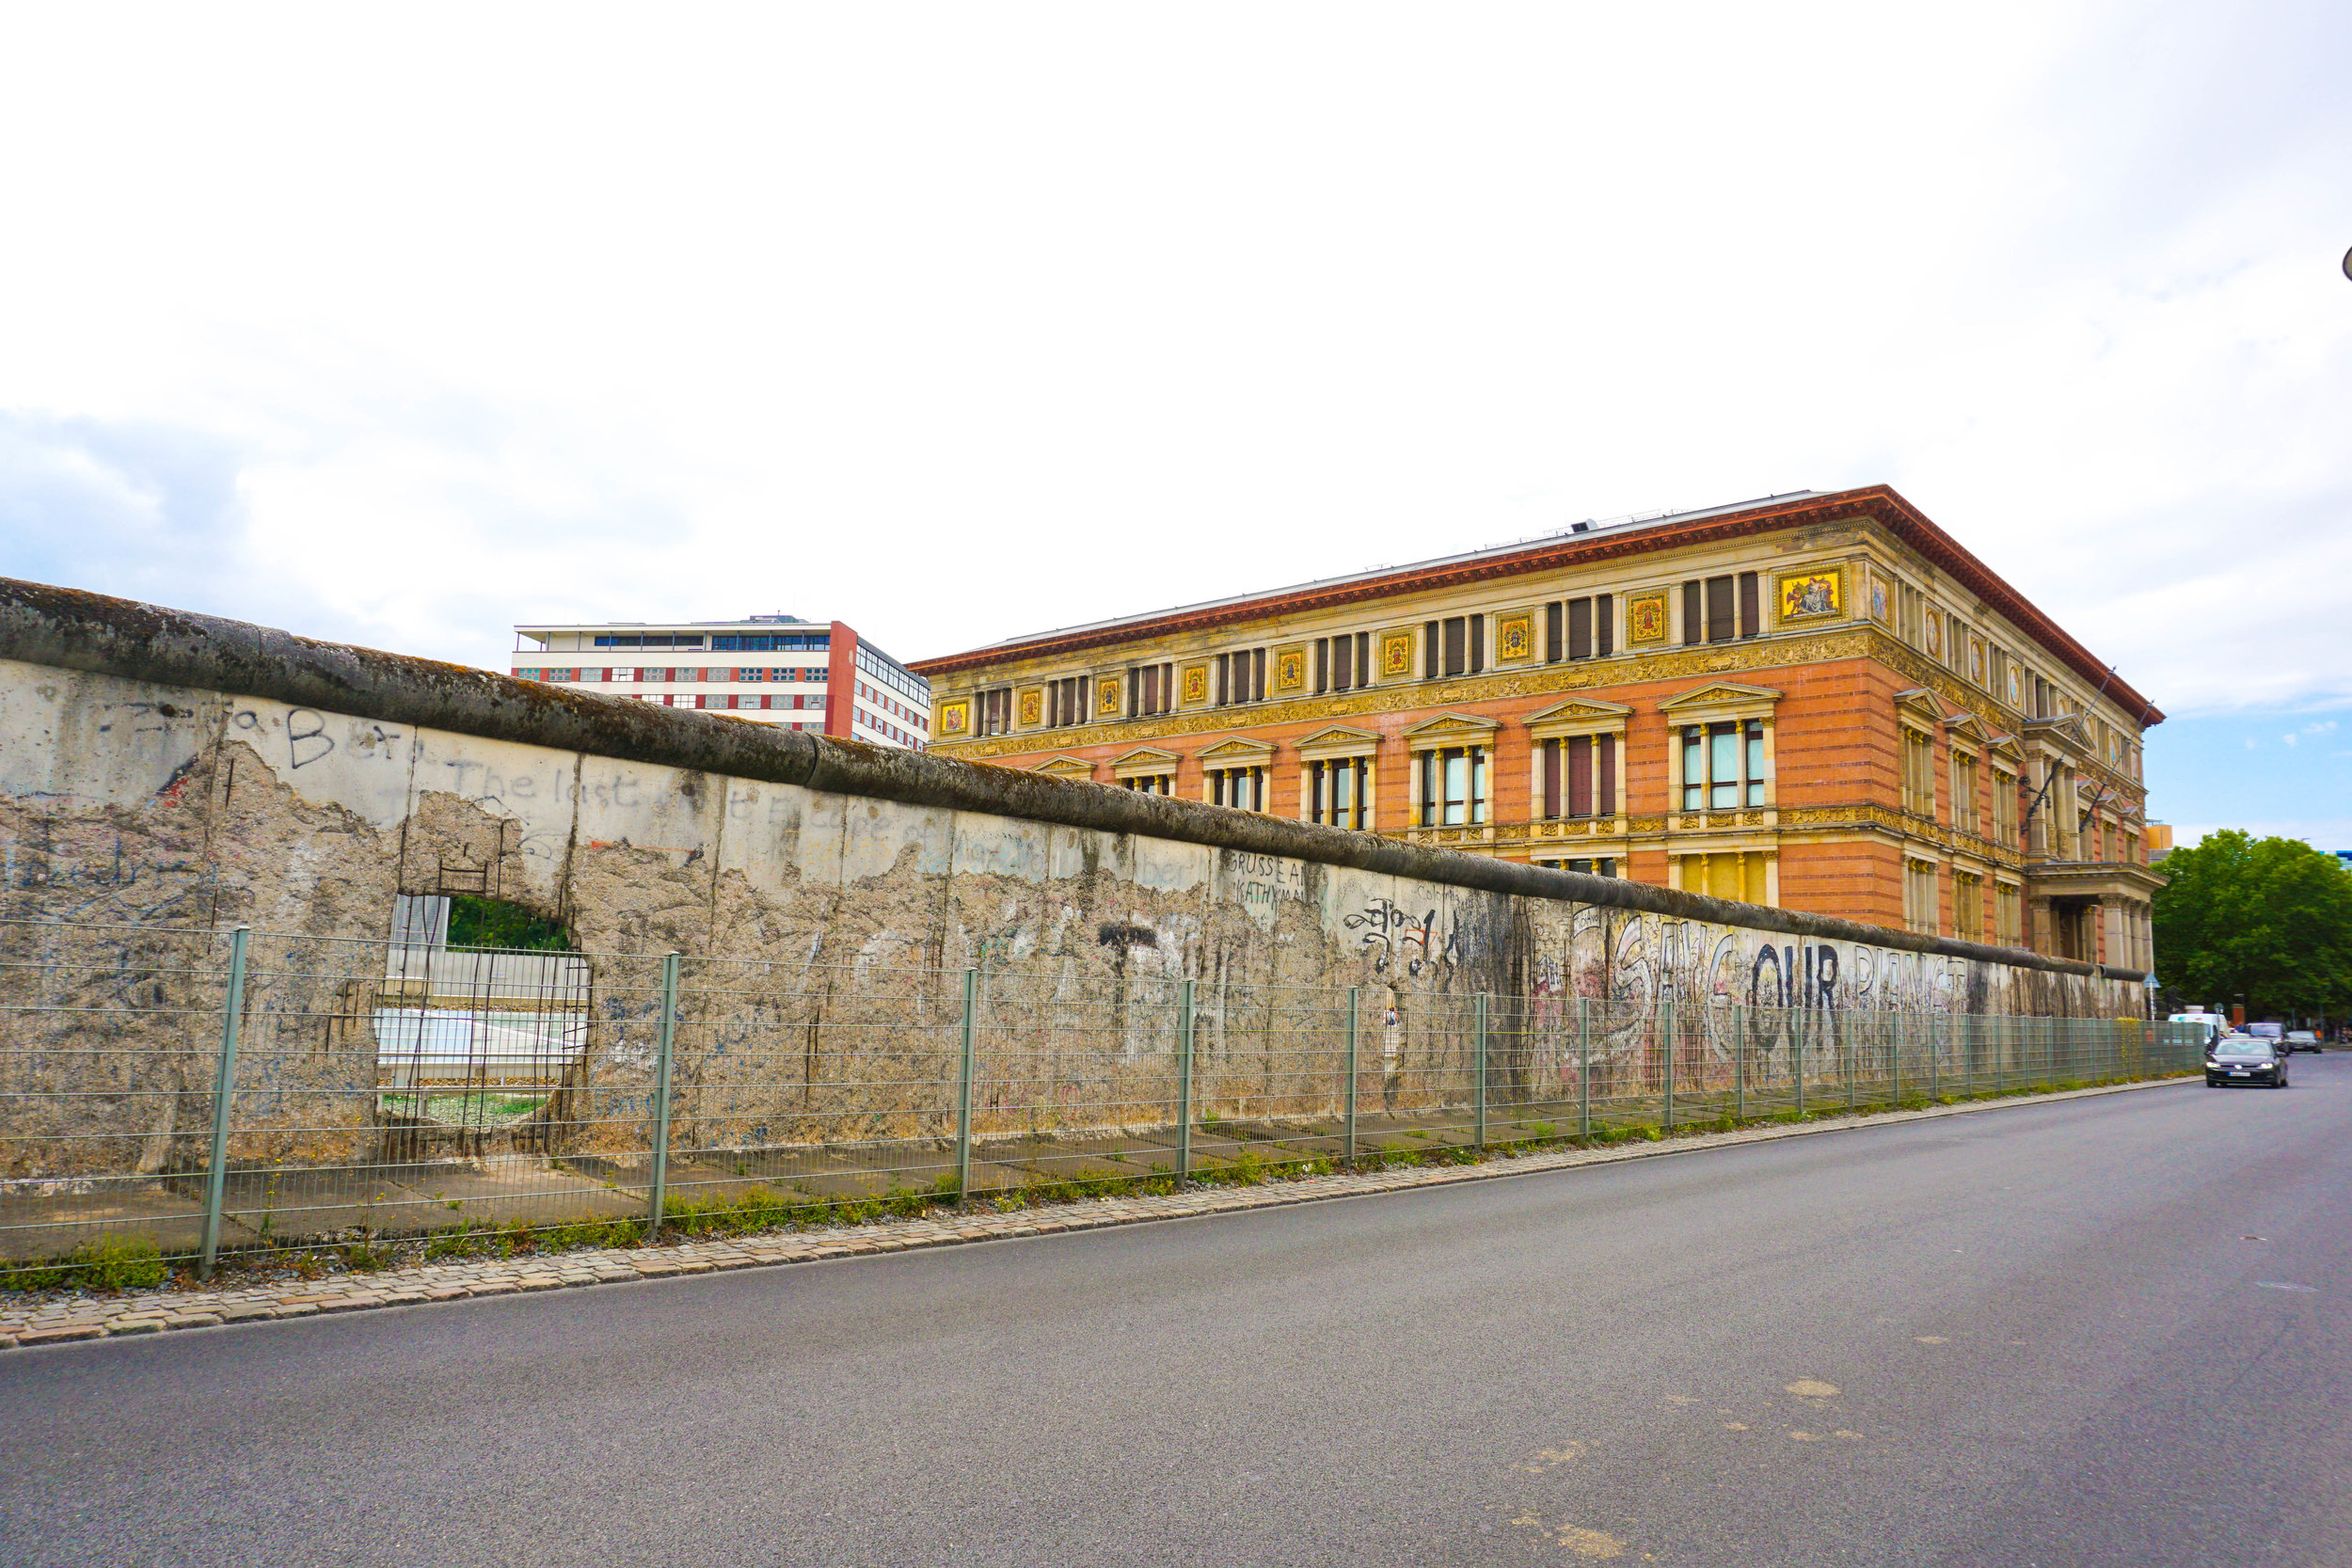 The Berlin Wall remains